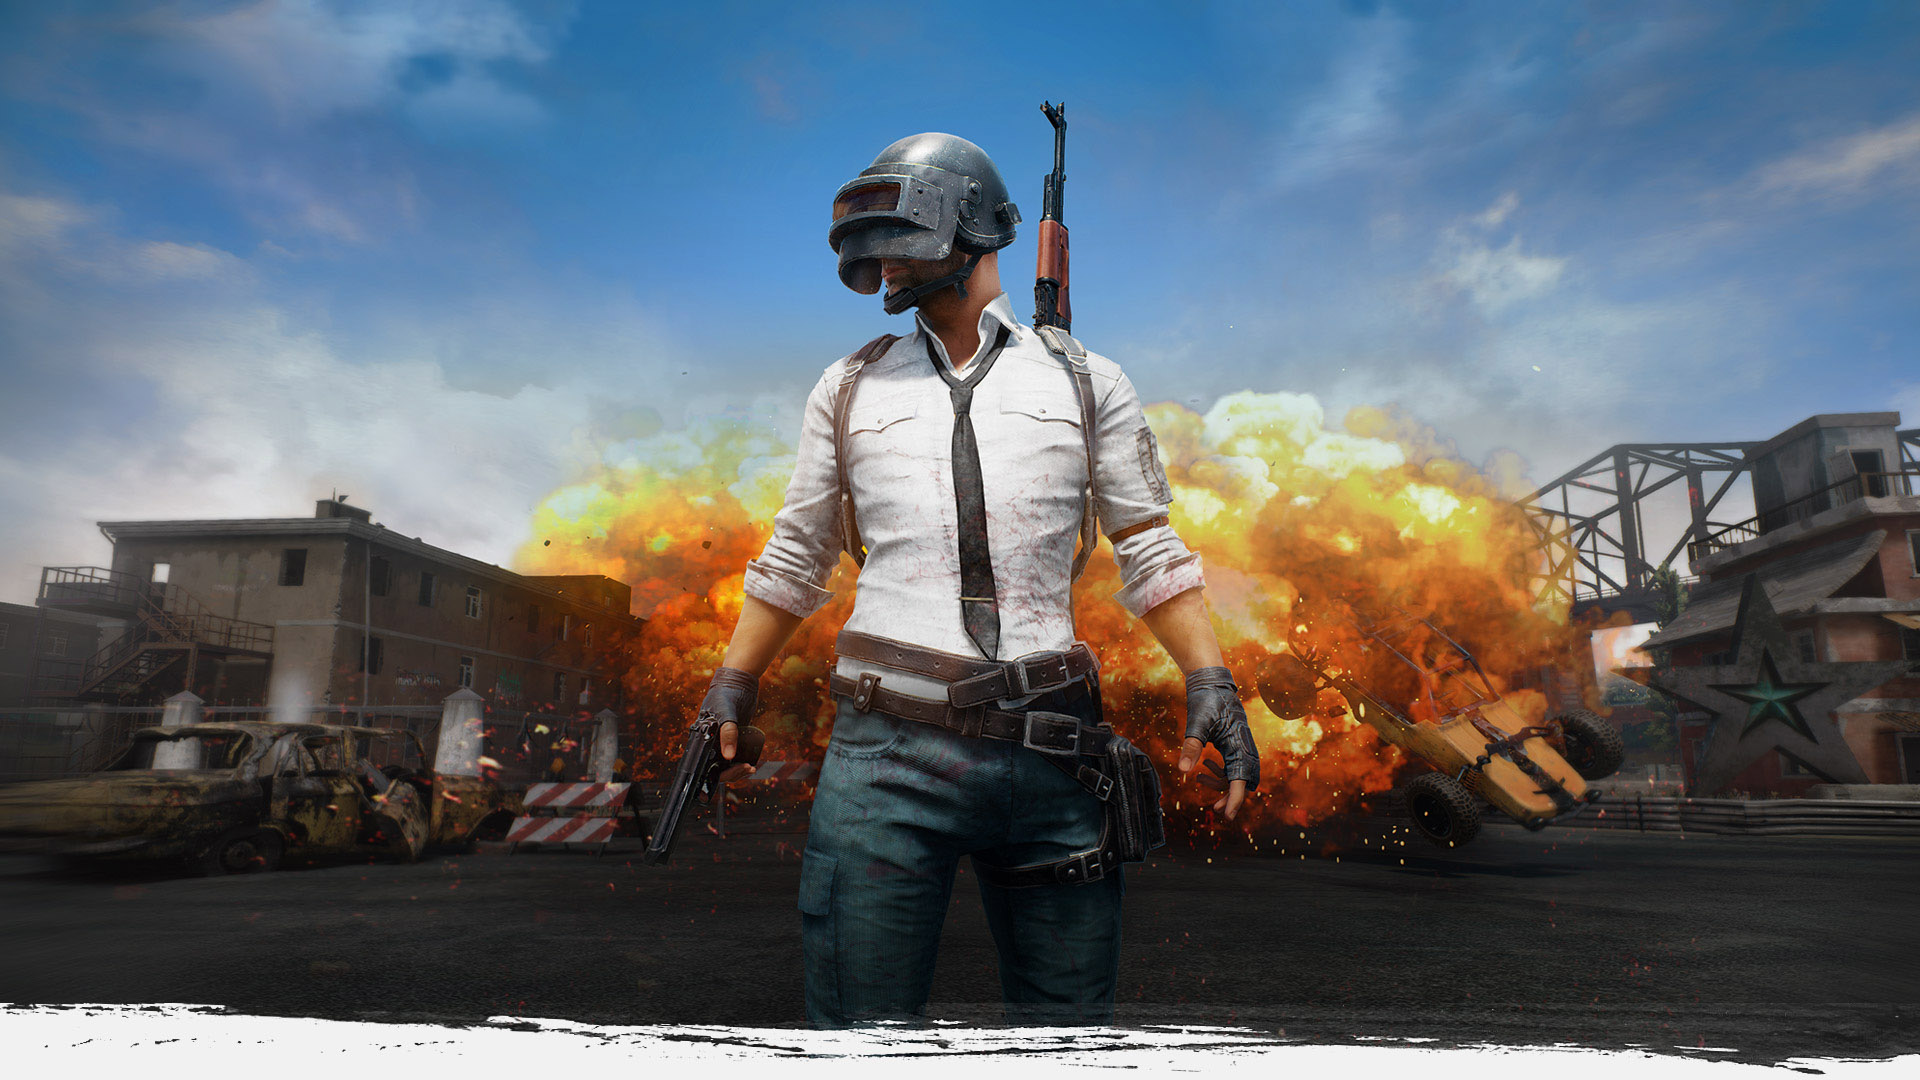 Straight up, Battlegrounds seems like an over-night success story. This game is extremely addictive and full of pulse-racing moments!